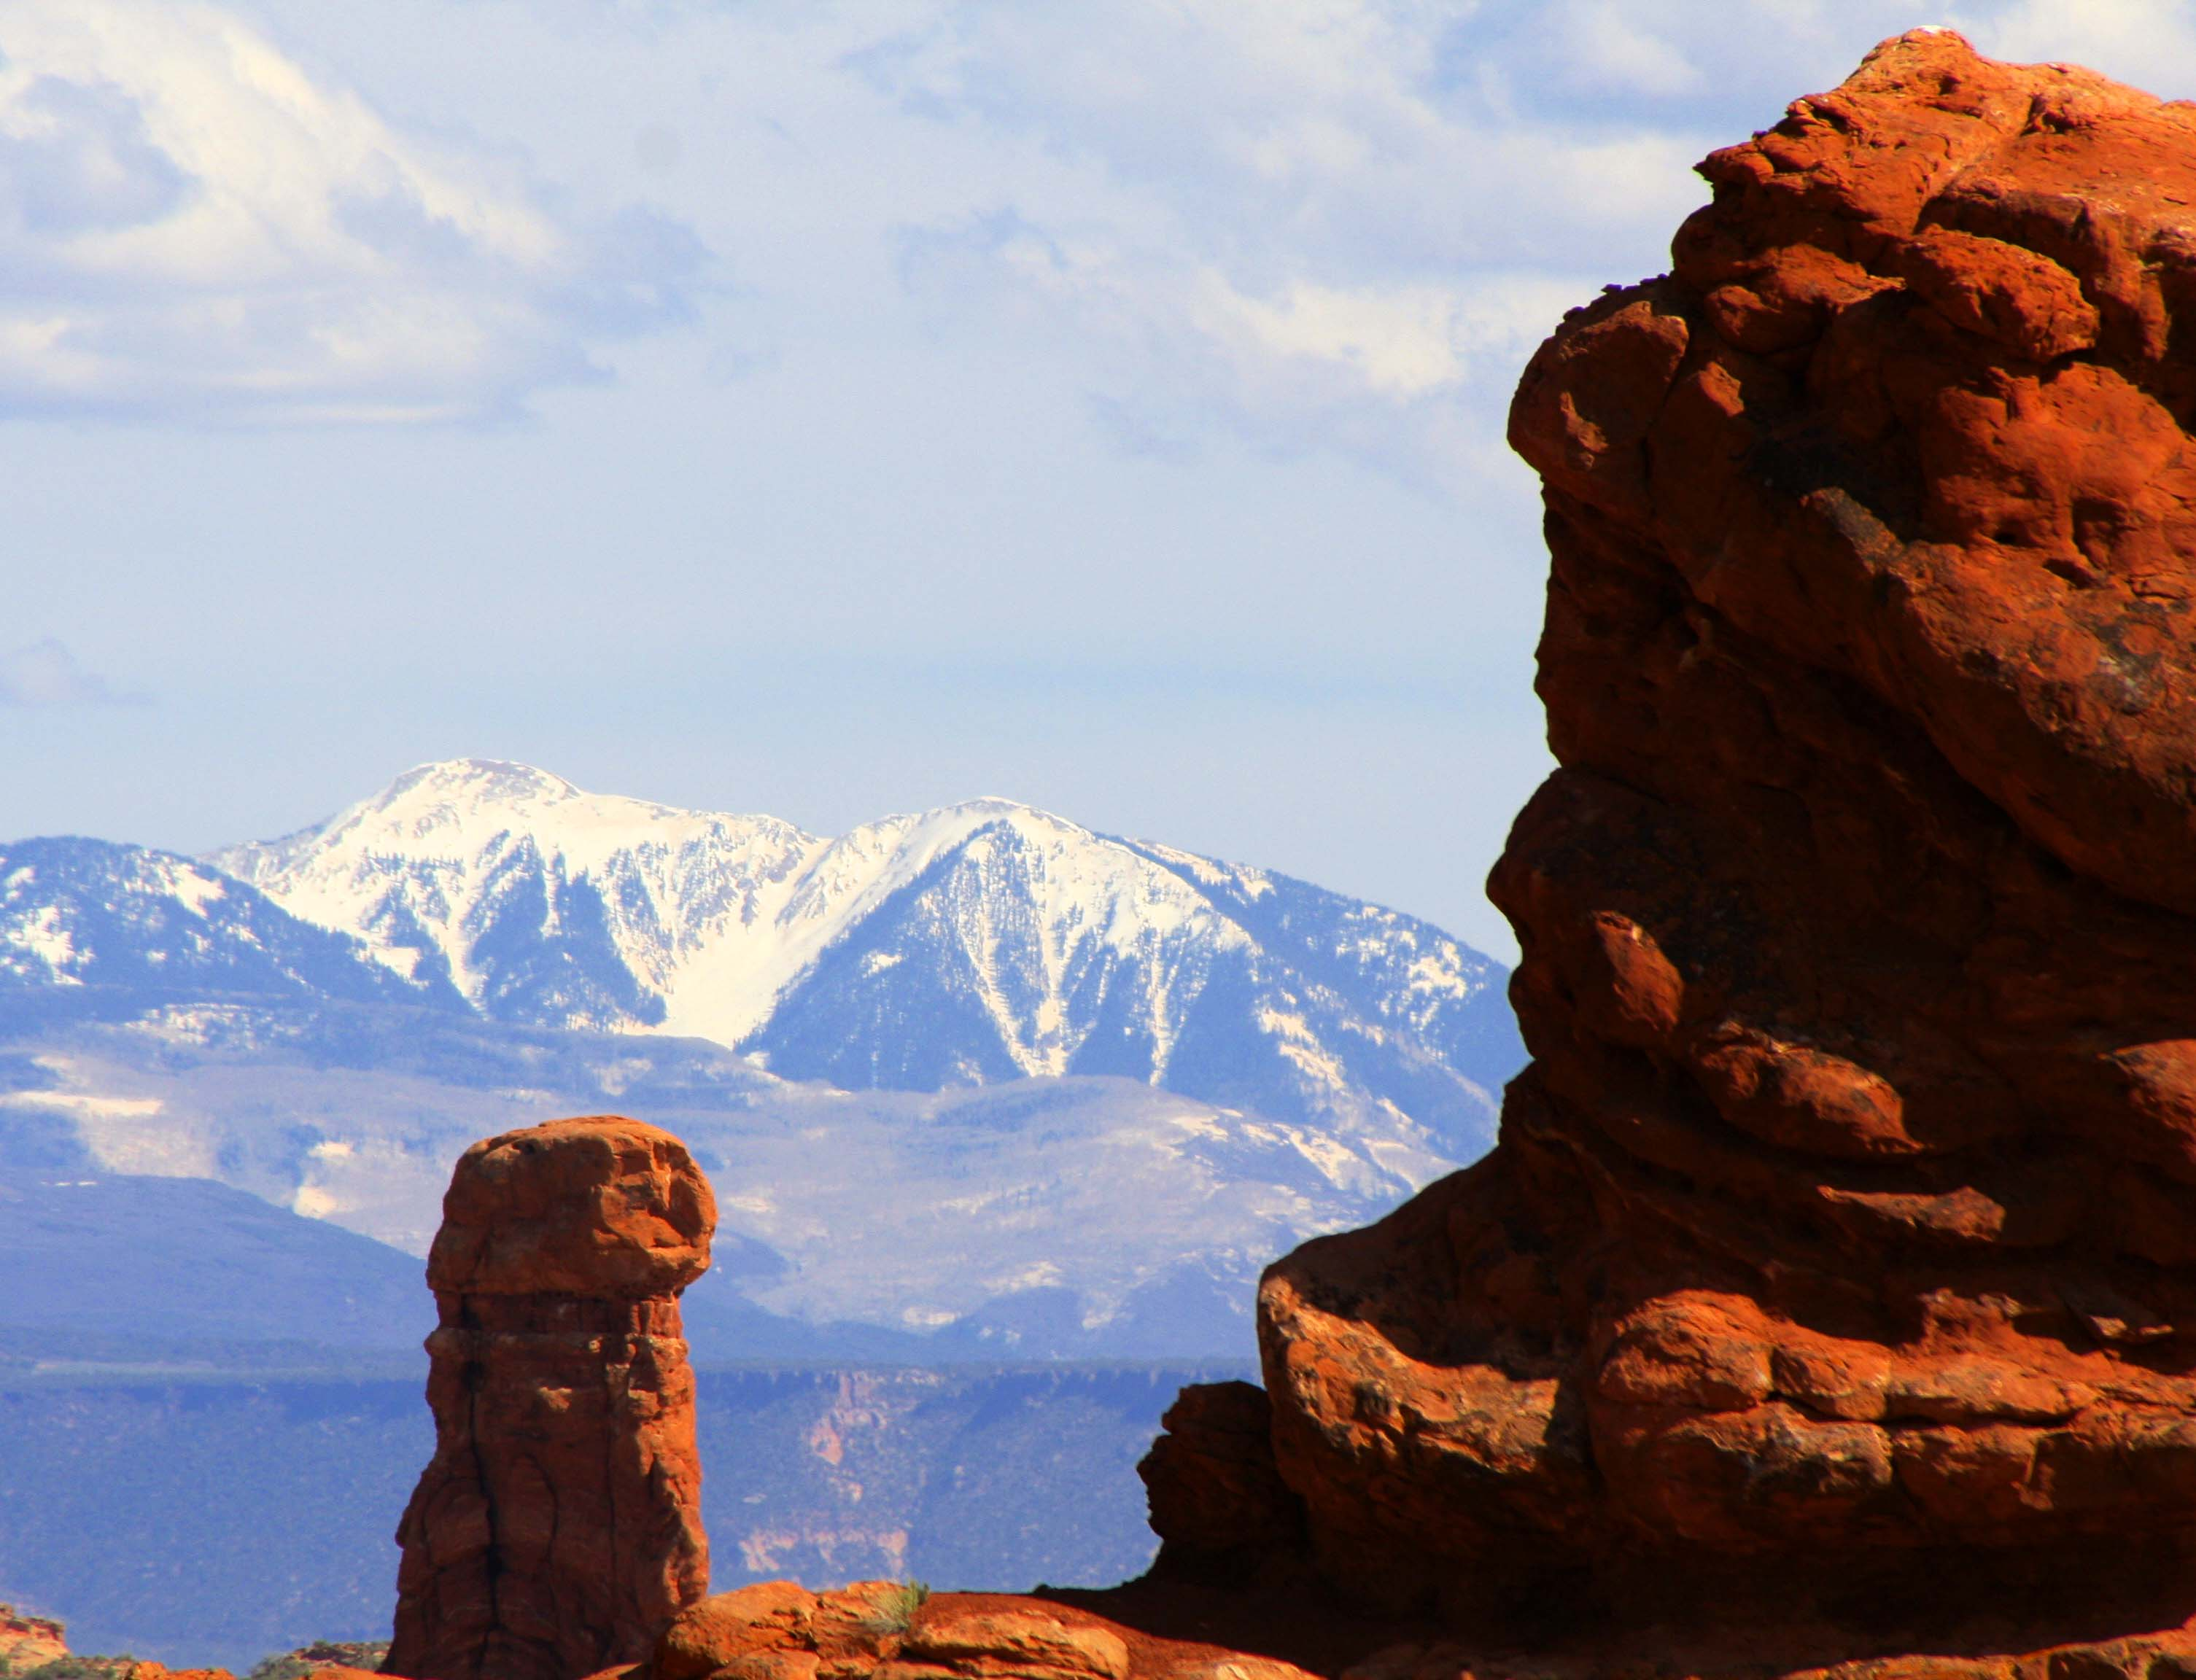 Photo of stone sculpture and mountains in Arches National park. Photo by Curtis Mekemson.